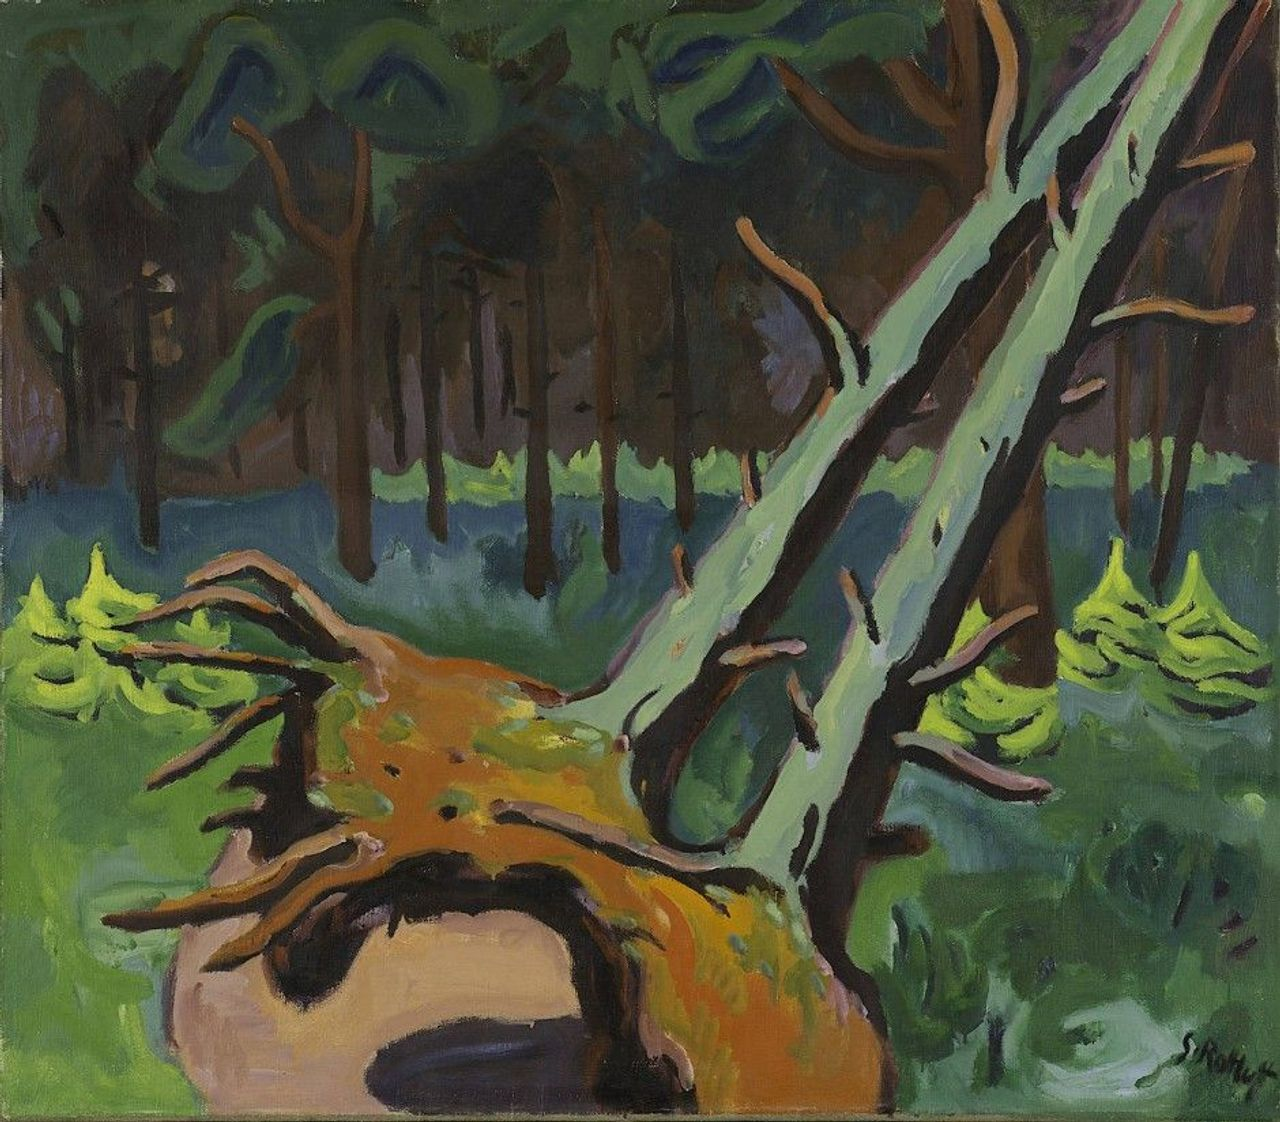 Karl Schmidt-Rottluff, Uprooted Trees, 1934